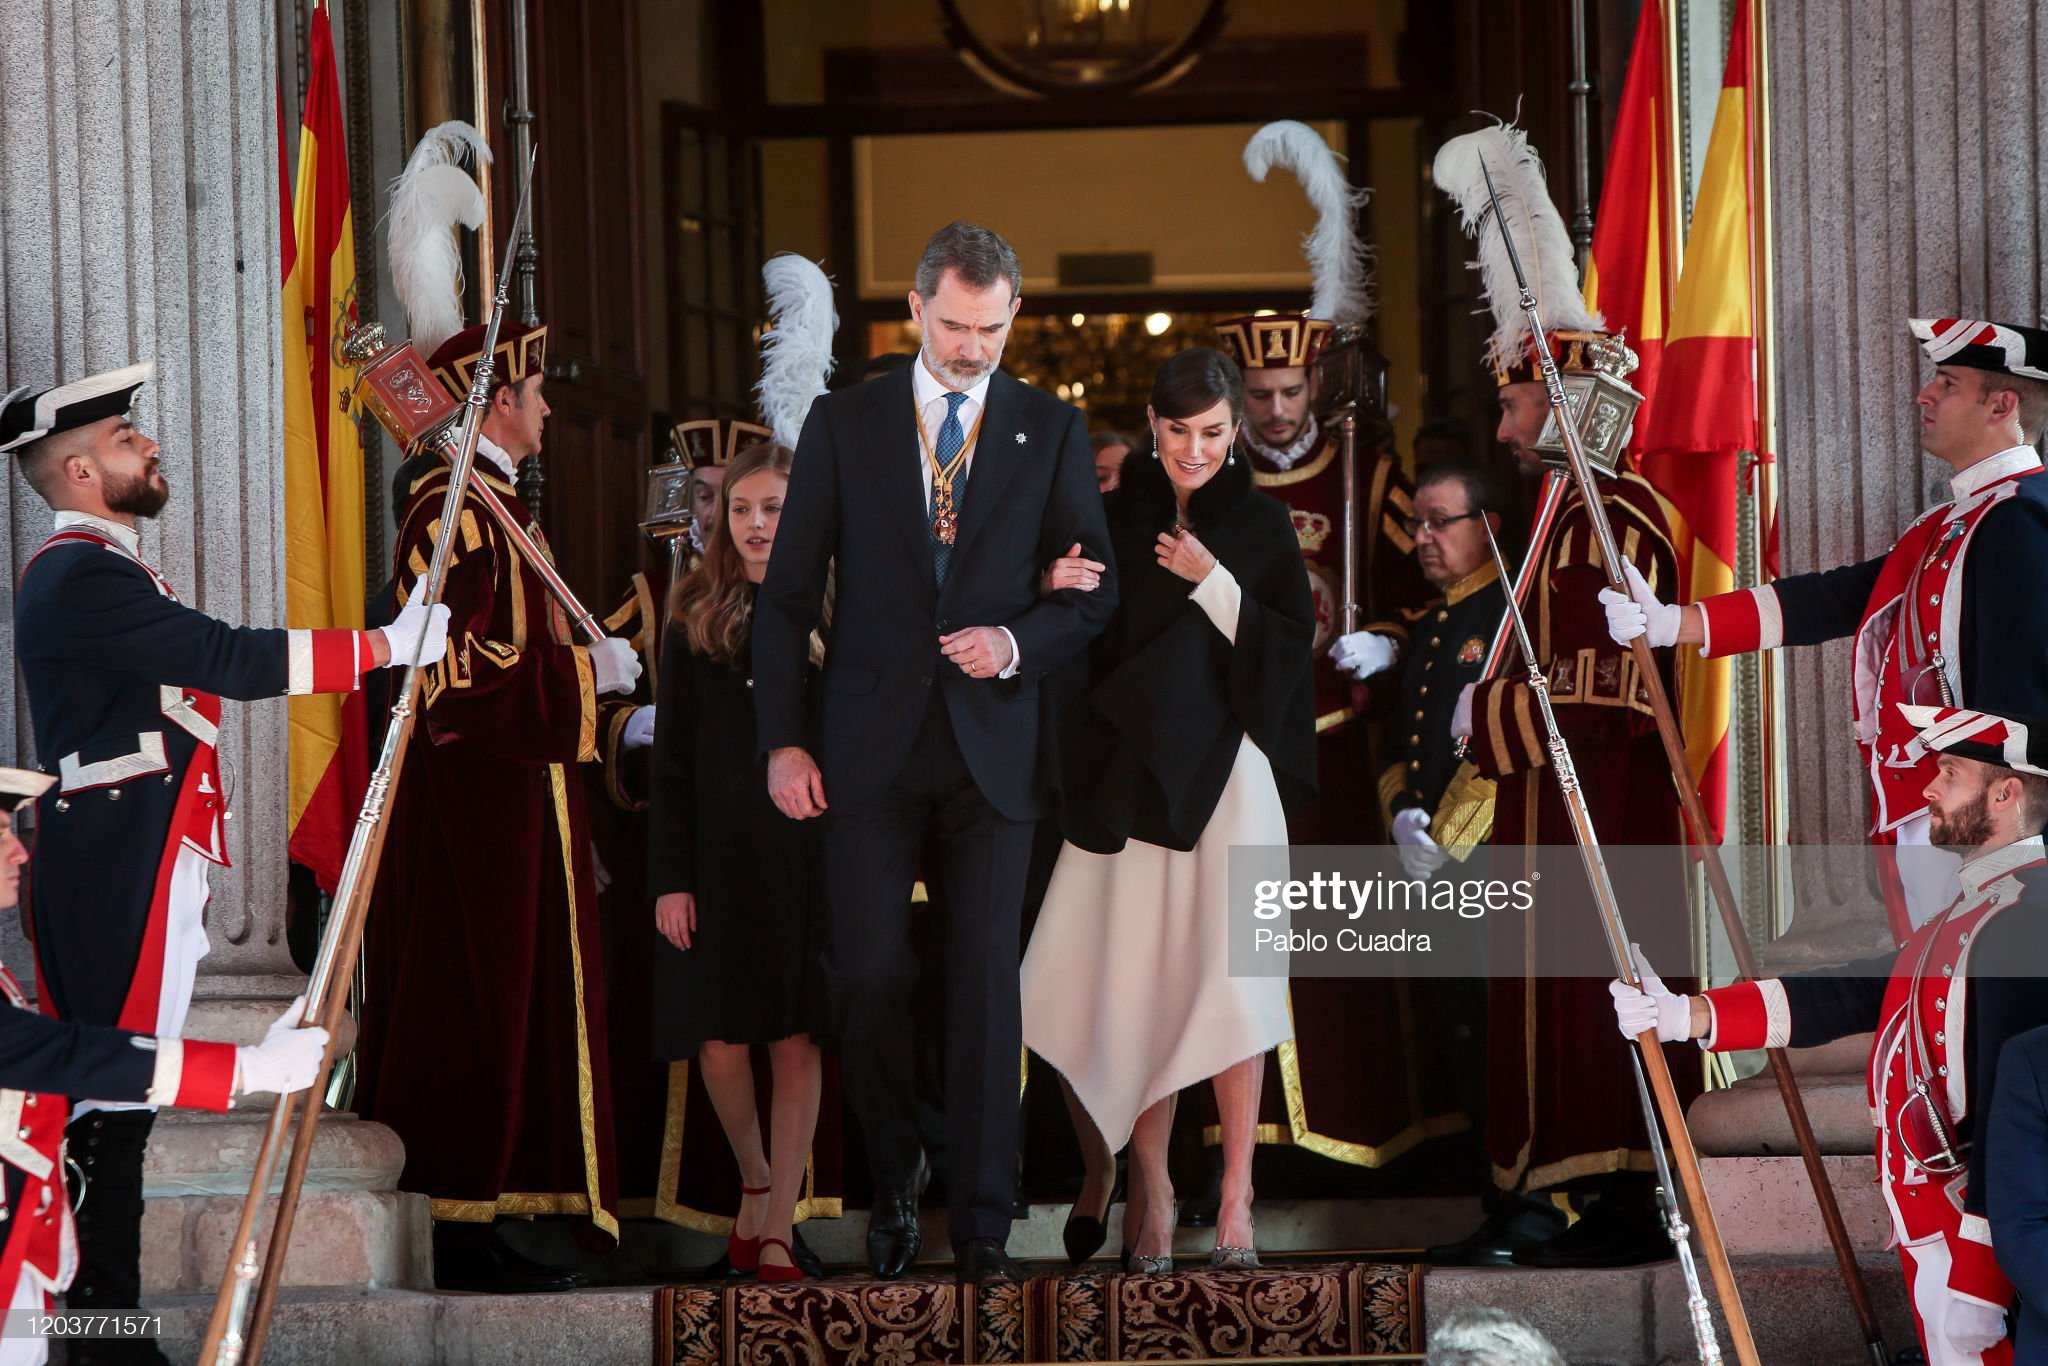 https://media.gettyimages.com/photos/king-felipe-vi-of-spain-queen-letizia-of-spain-and-princess-leonor-of-picture-id1203771571?s=2048x2048